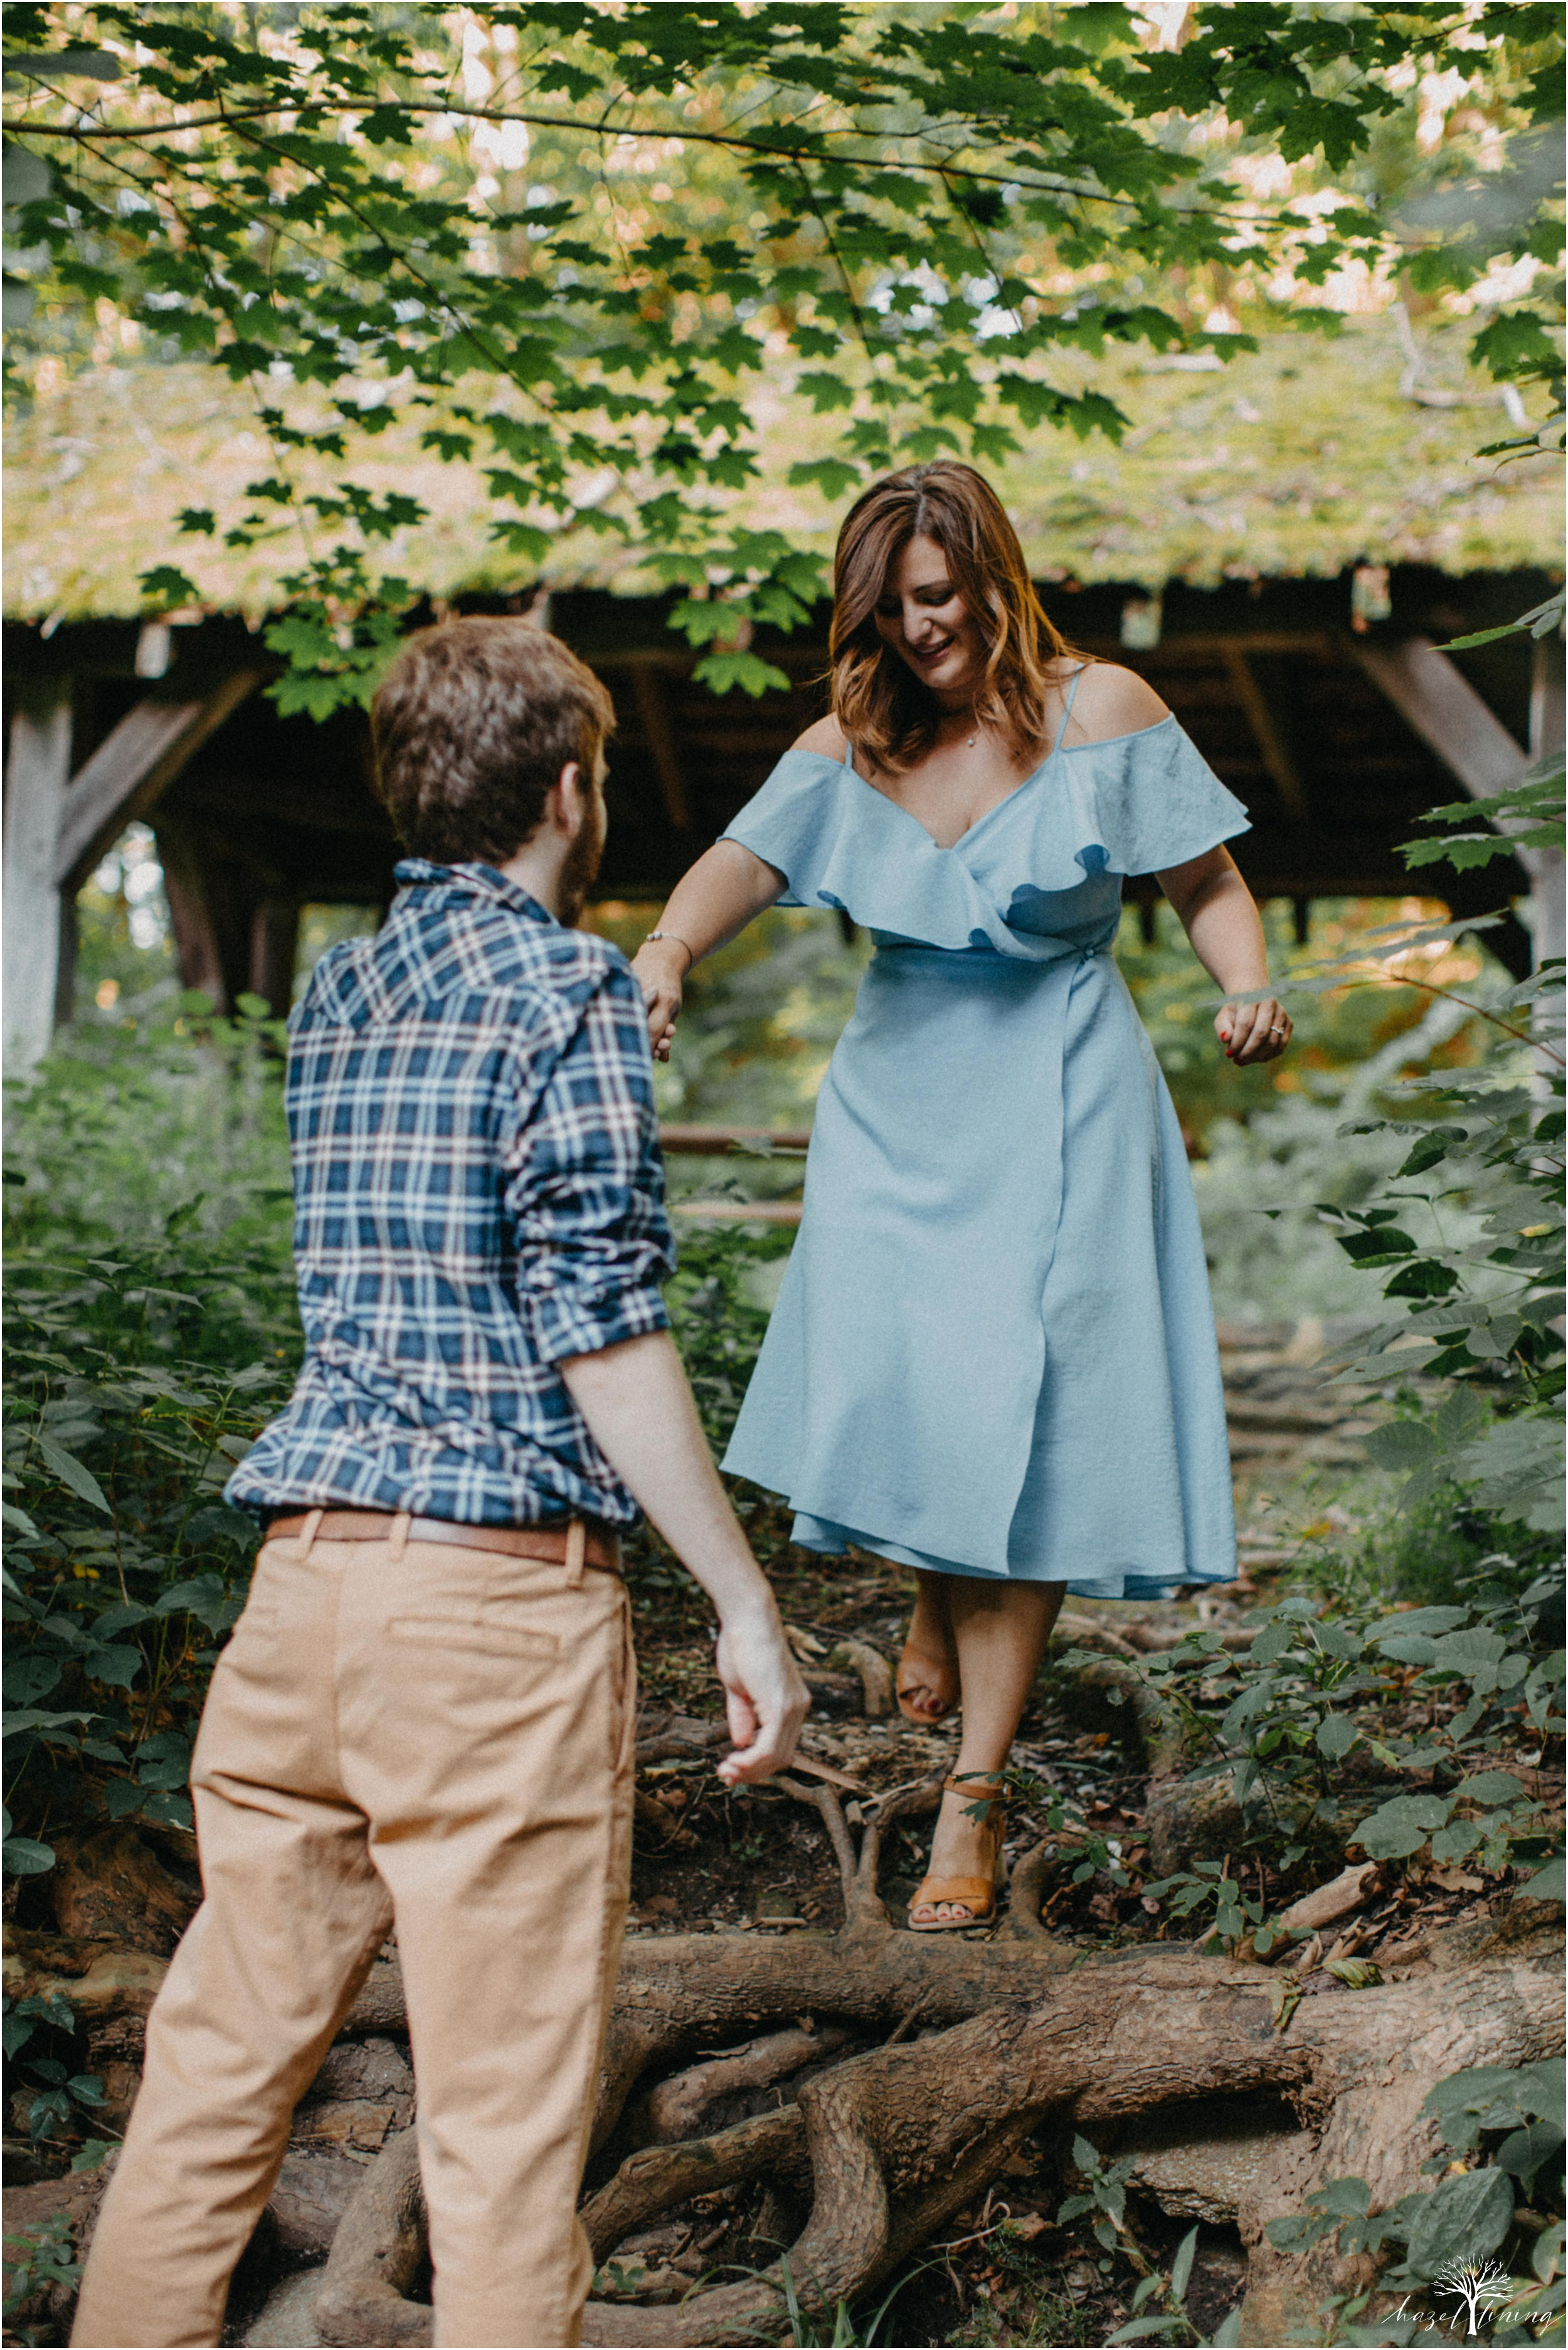 paige-kochey-chris-graham-valley-green-wissahickon-park-philadelphia-summer-engagement-session-hazel-lining-photography-destination-elopement-wedding-engagement-photography_0017.jpg